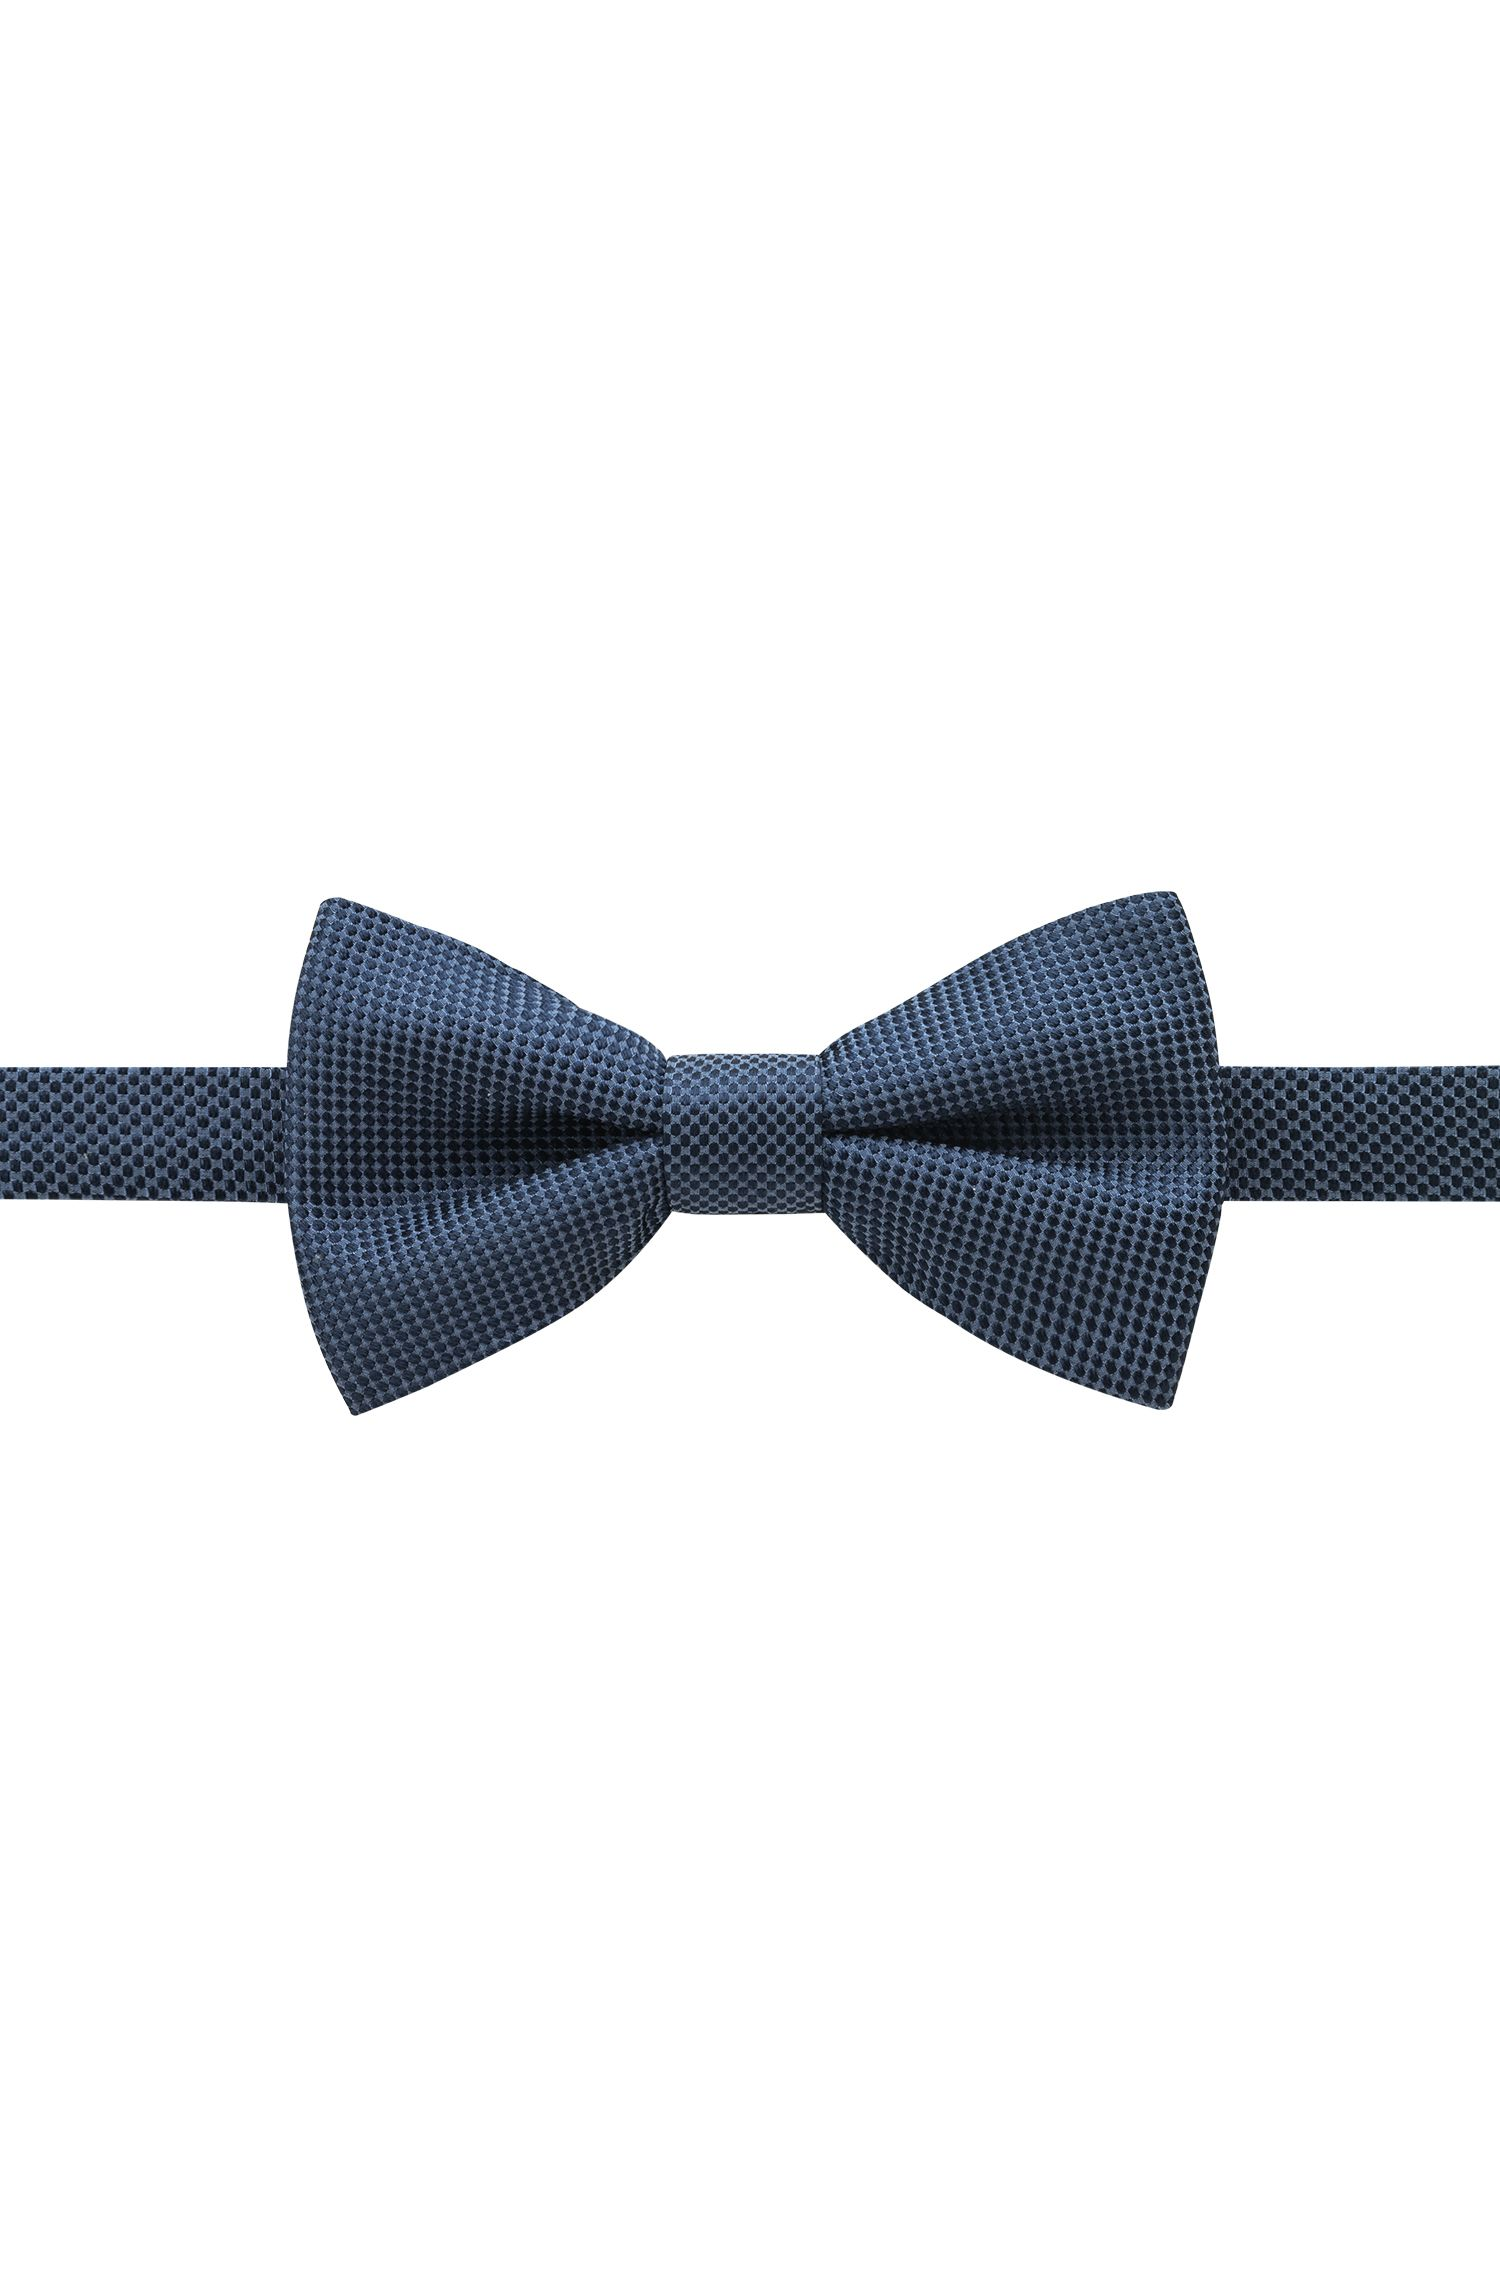 Micro-pattern bow tie in silk jacquard, Patterned